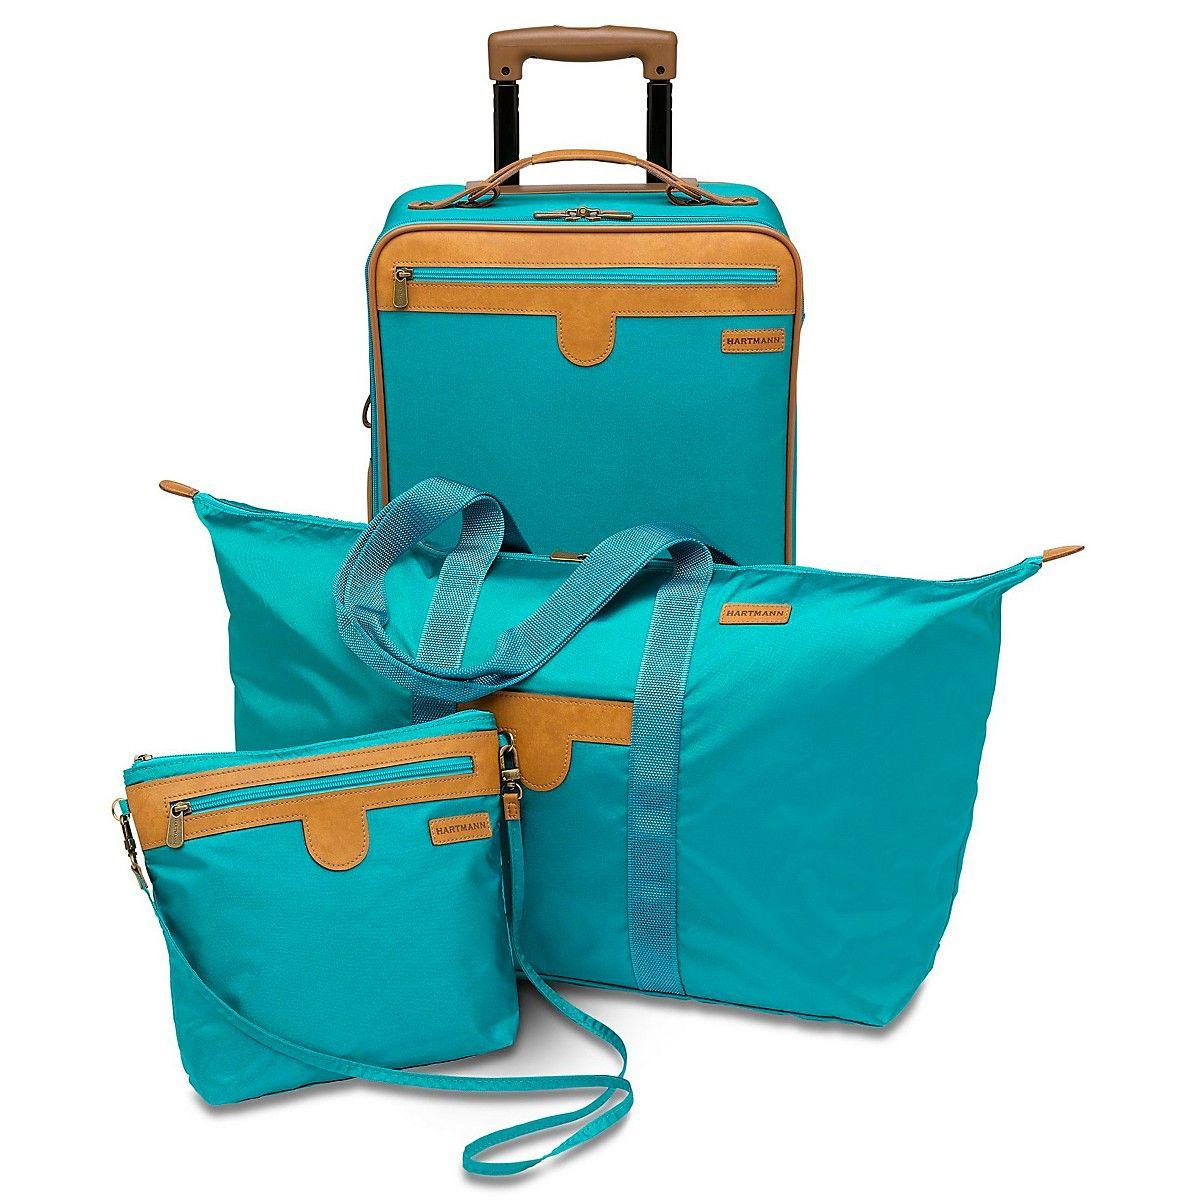 Coach Luggage Sets